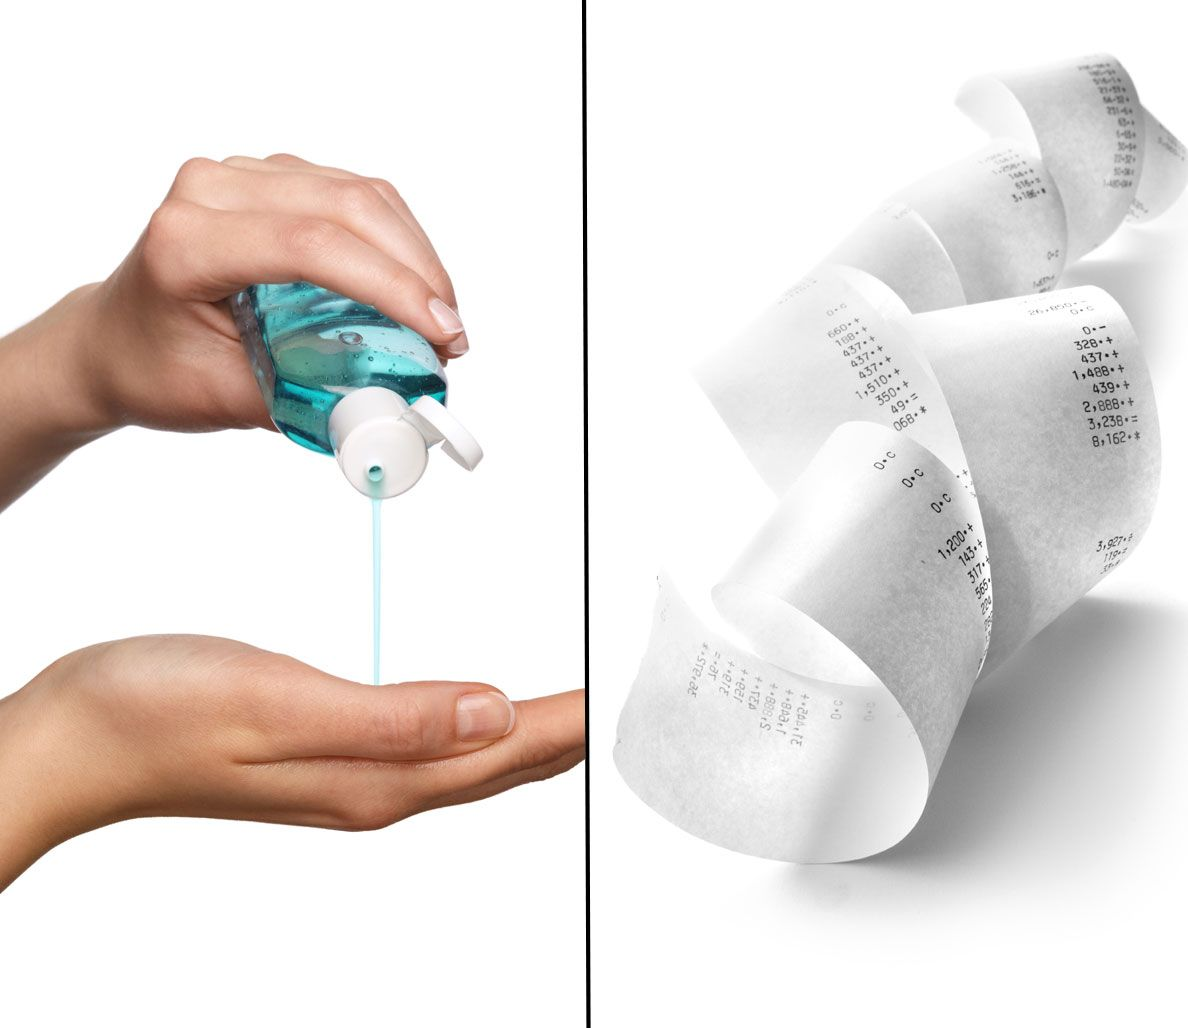 Why Using Hand Sanitizer Before Handling Receipts Is Dangerous To